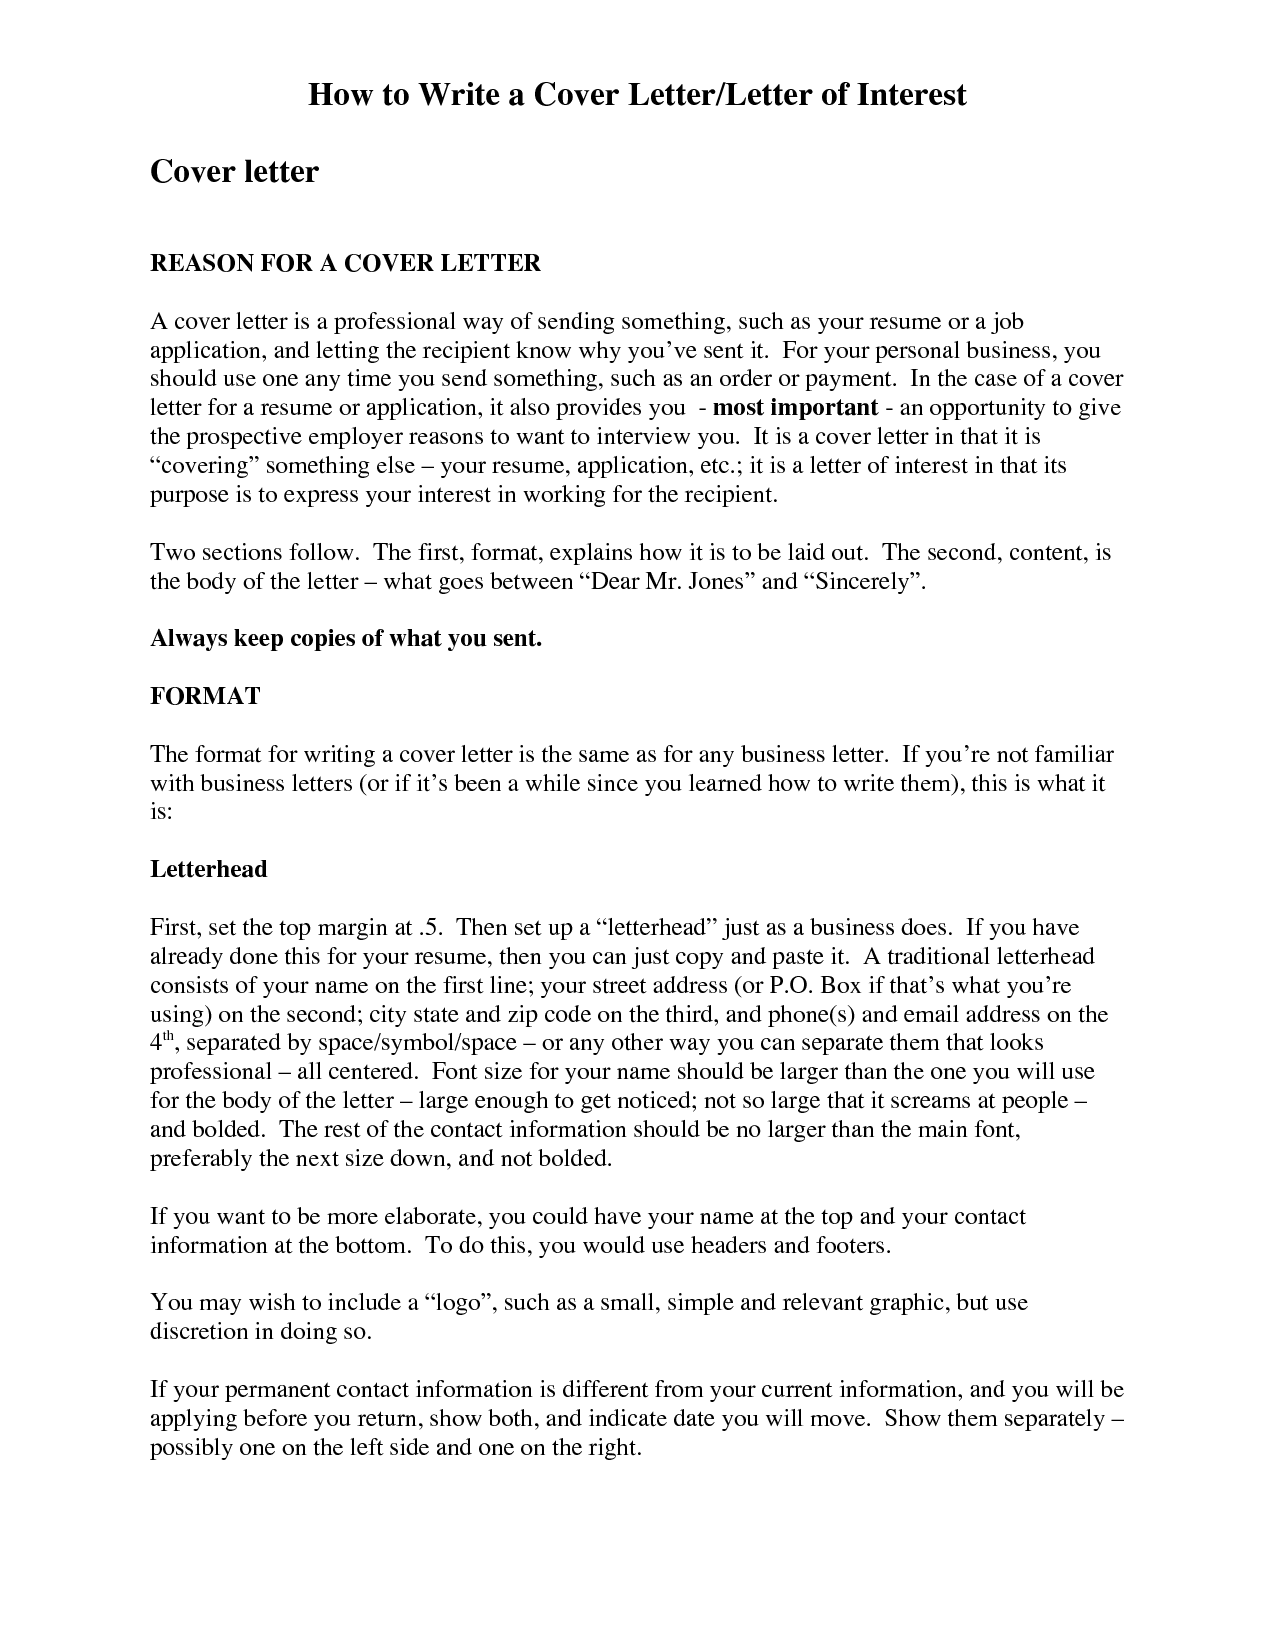 how to write a covering letter for a job vacancy - how to write a cover letter of interest example for a job